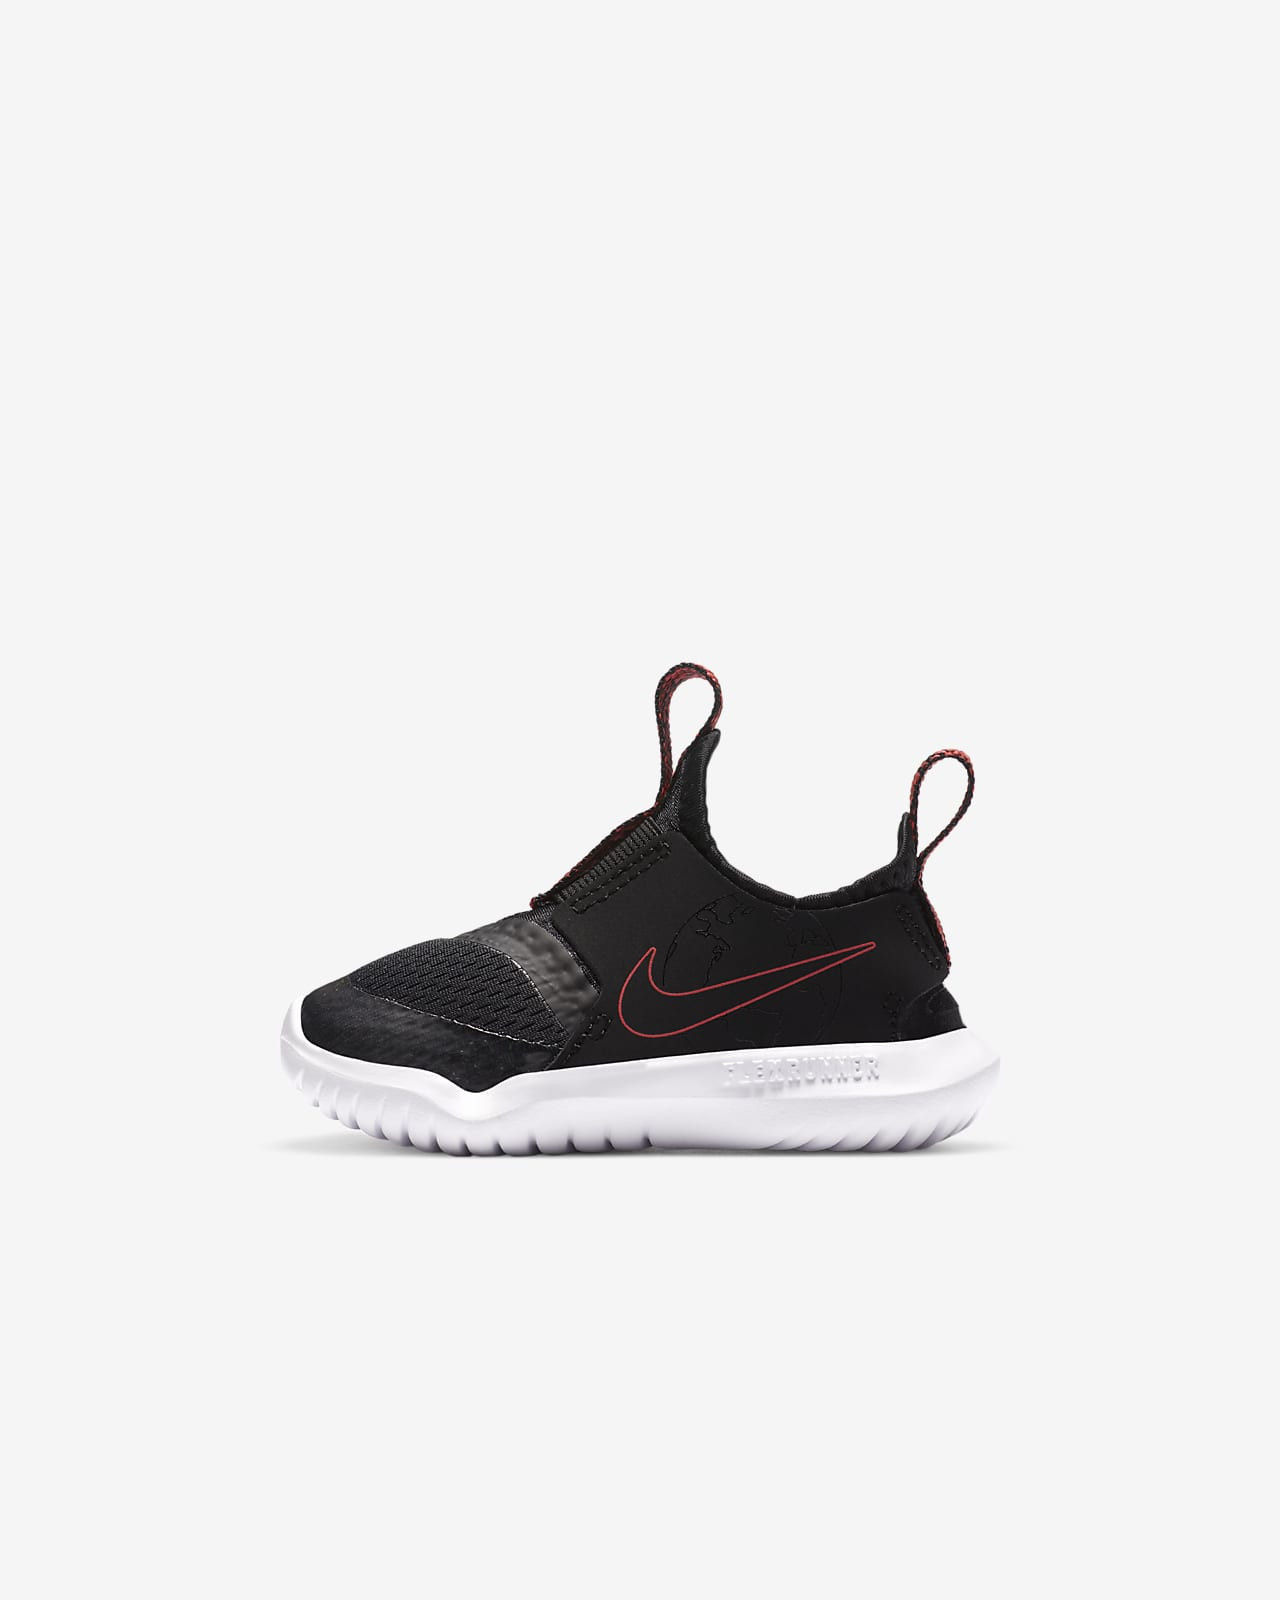 Nike Flex Runner SE Baby and Toddler Shoe